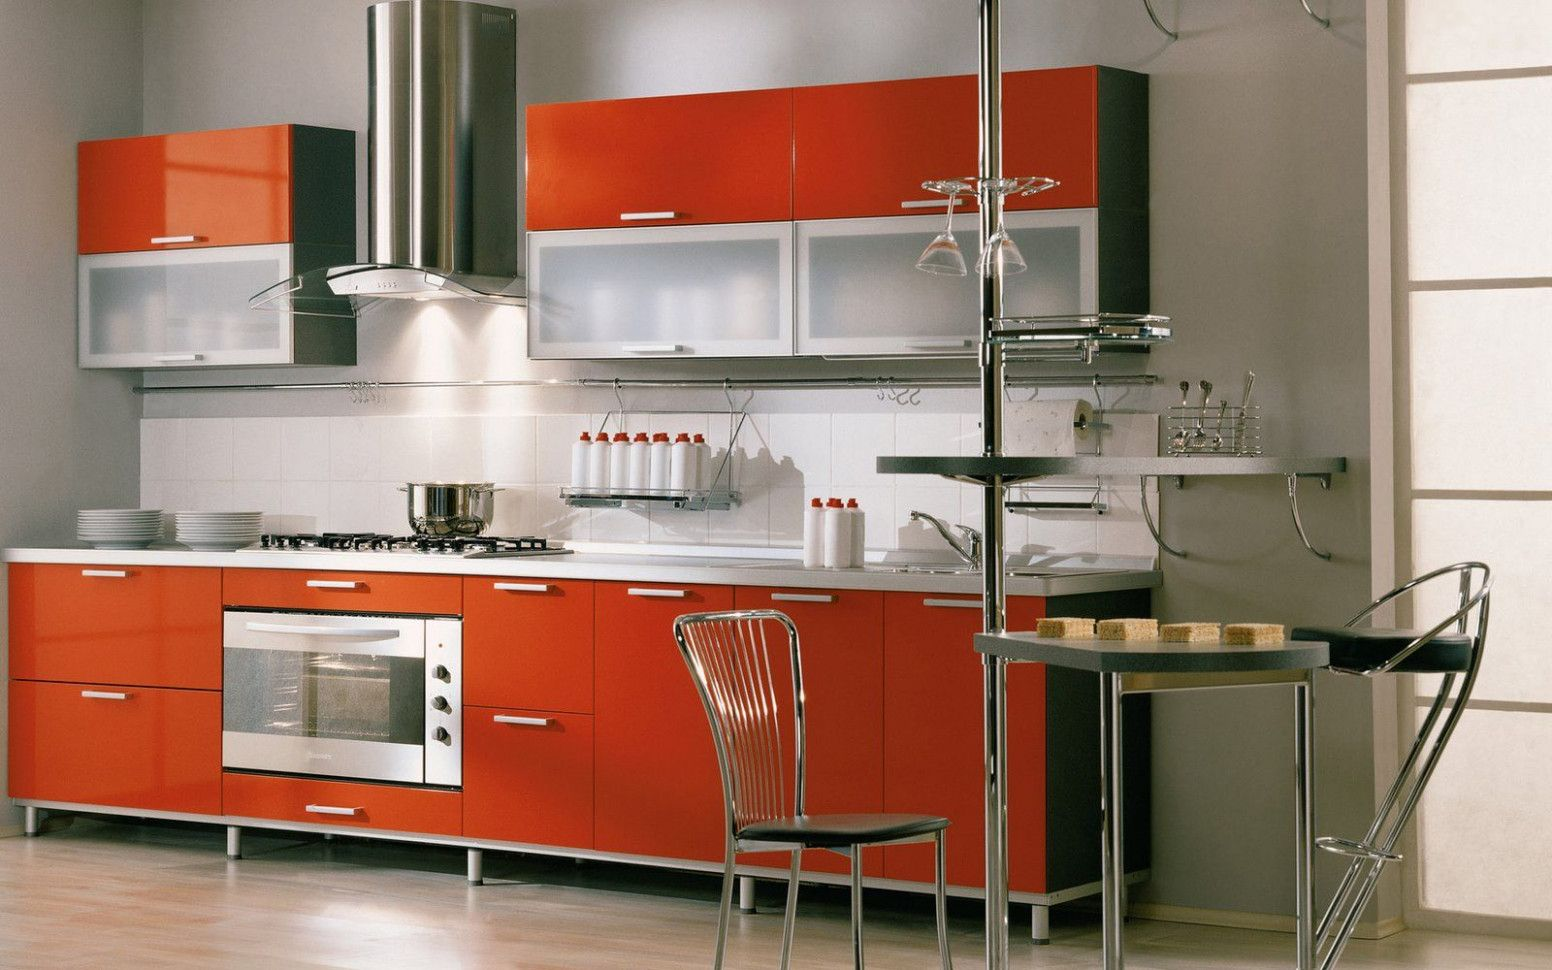 19 ideas compact kitchen cabinet i adulation a agleam new